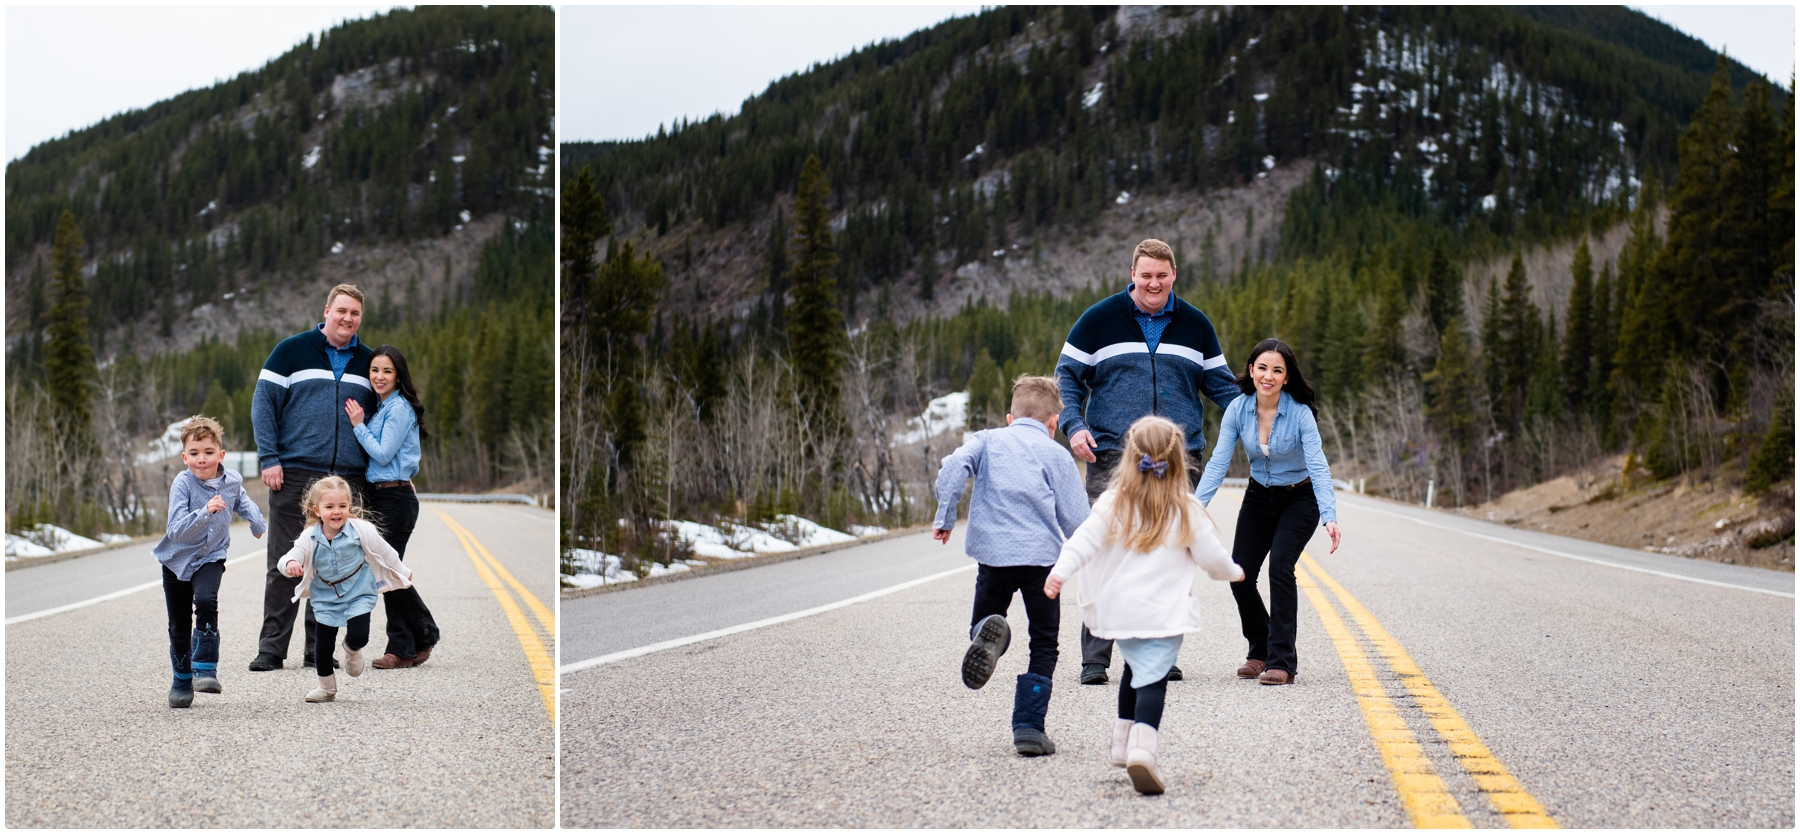 Calgary Family Photography - Elbow Falls Kananaski